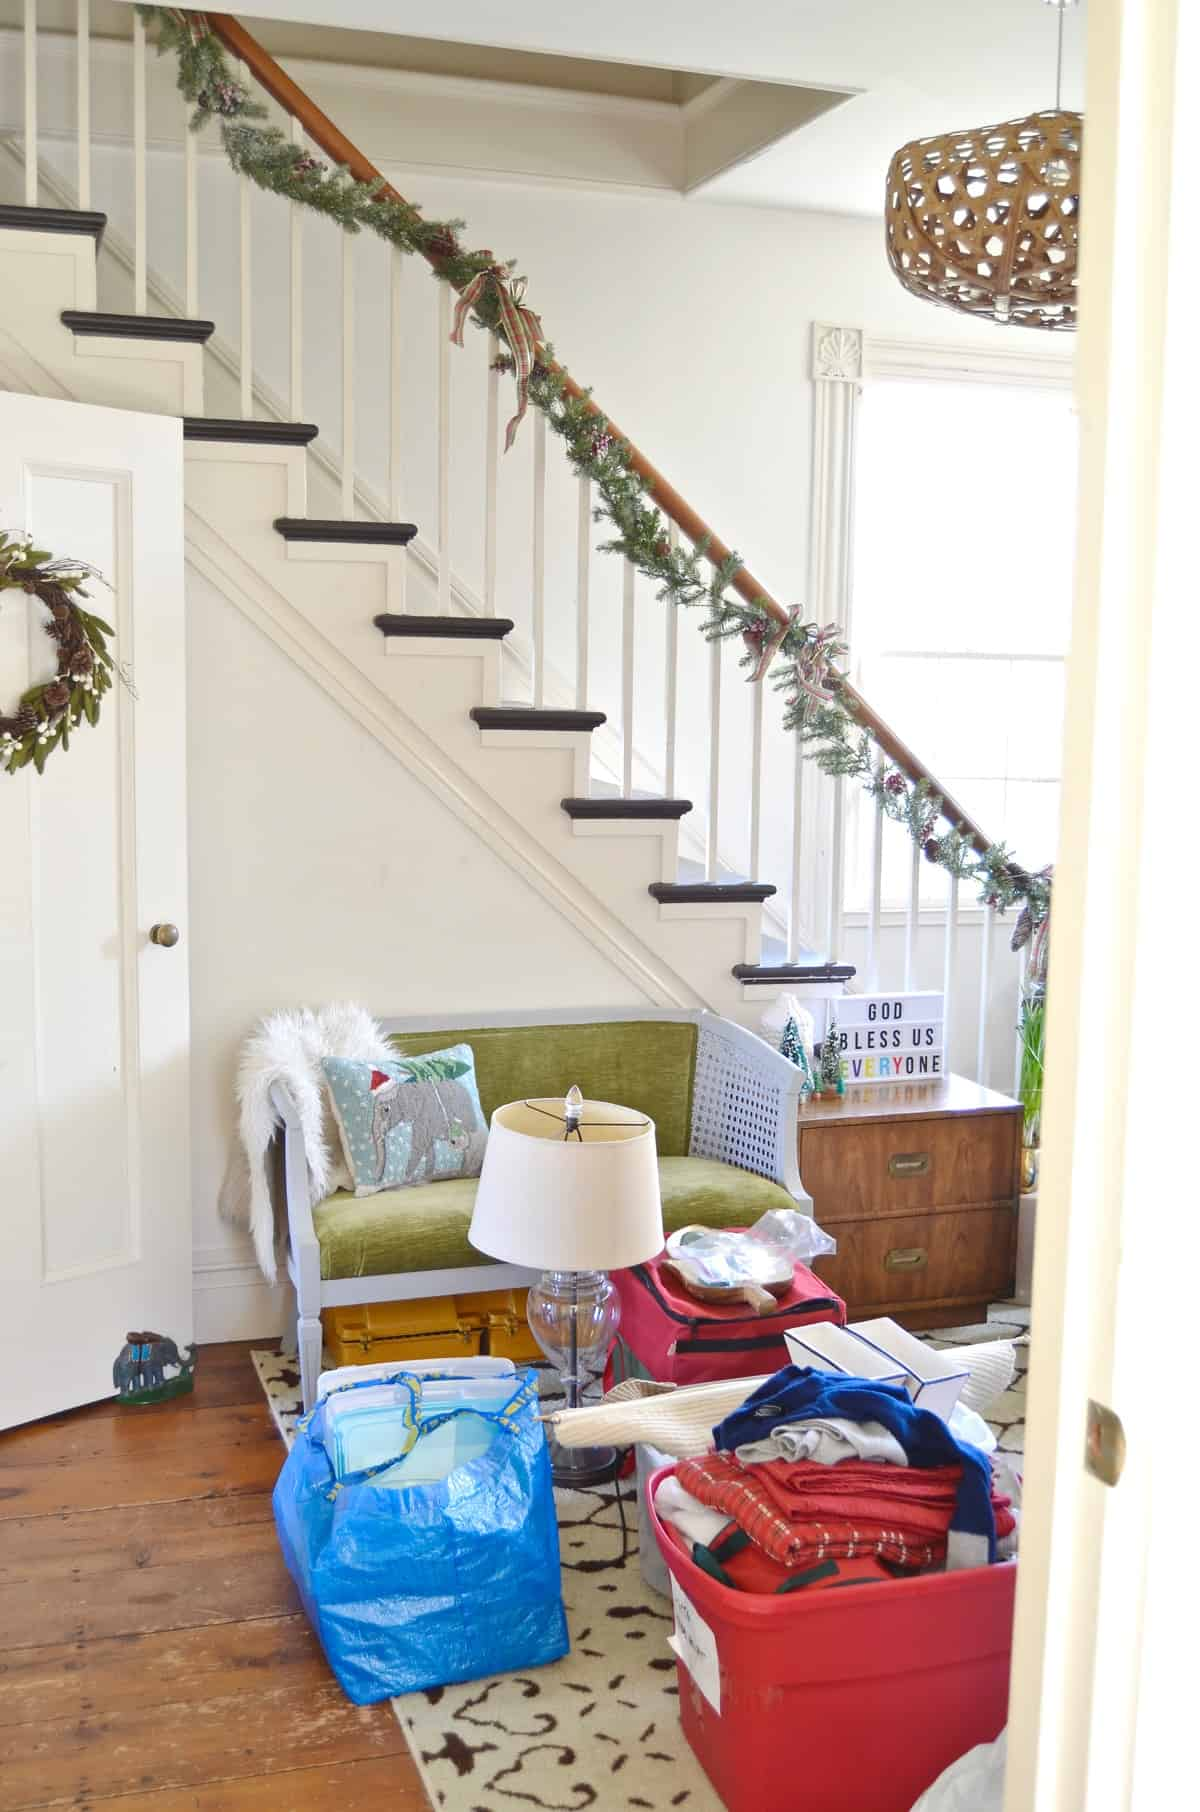 Bloggers share what their homes really look like this holiday season.